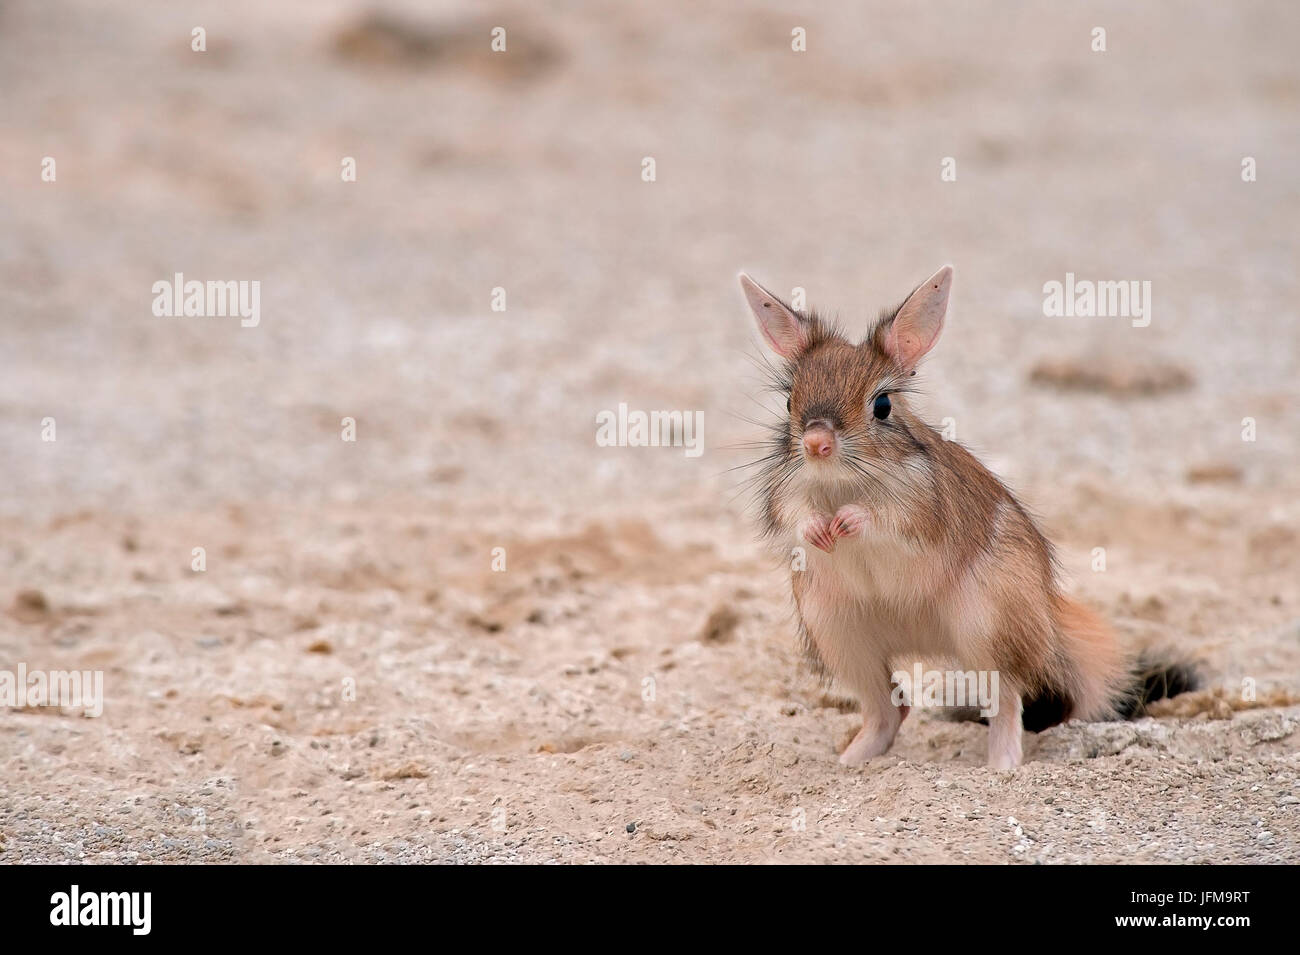 Amboseli Park, Kenya, Africa The Springhare or Cape hare jumper is a small mammal rodent that moves almost exclusively - Stock Image